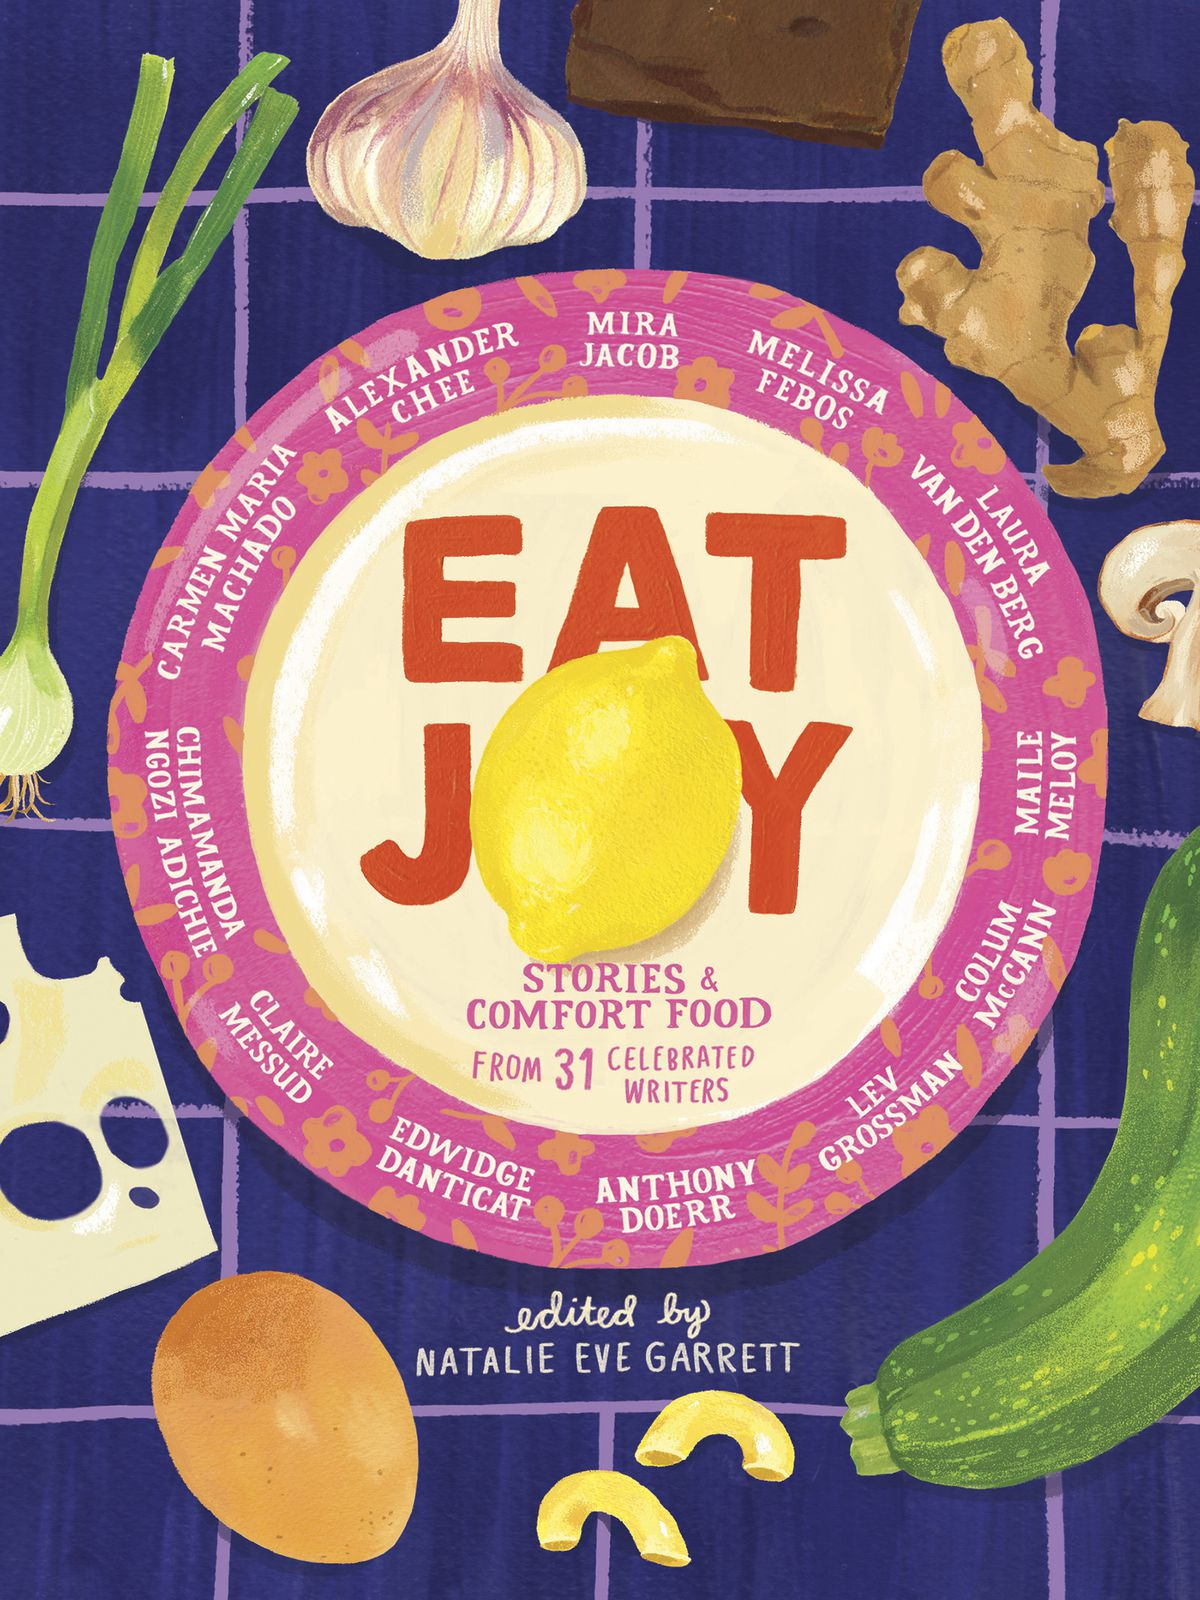 The cover of Eat Joy: an illustration of a plate with a lemon and surrounded by food, including a zucchini, garlic, ginger, slice of cheese, and an egg